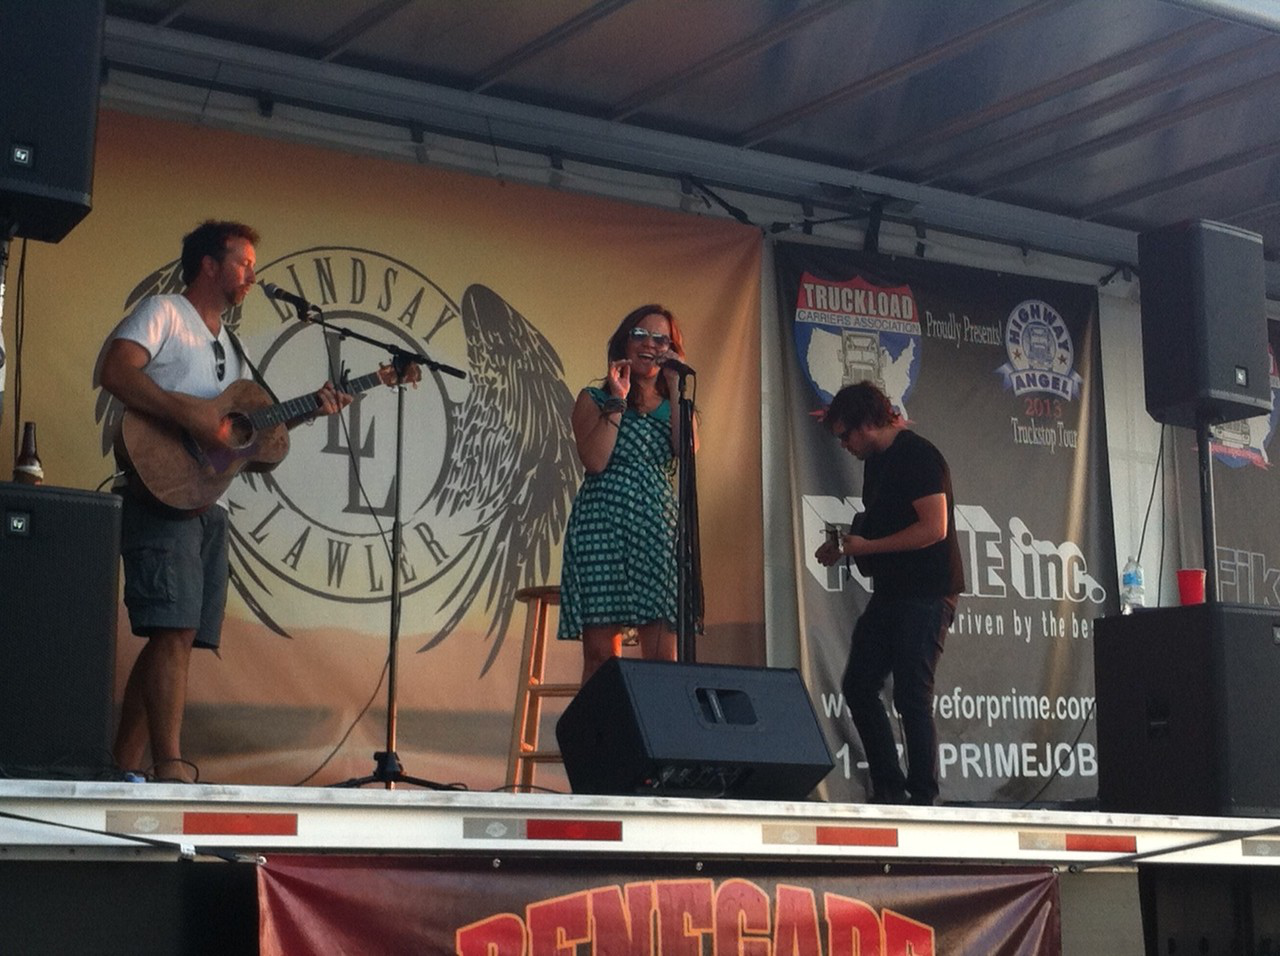 Lindsay Lawler's truck stop concert series a dedication to trucking heroes